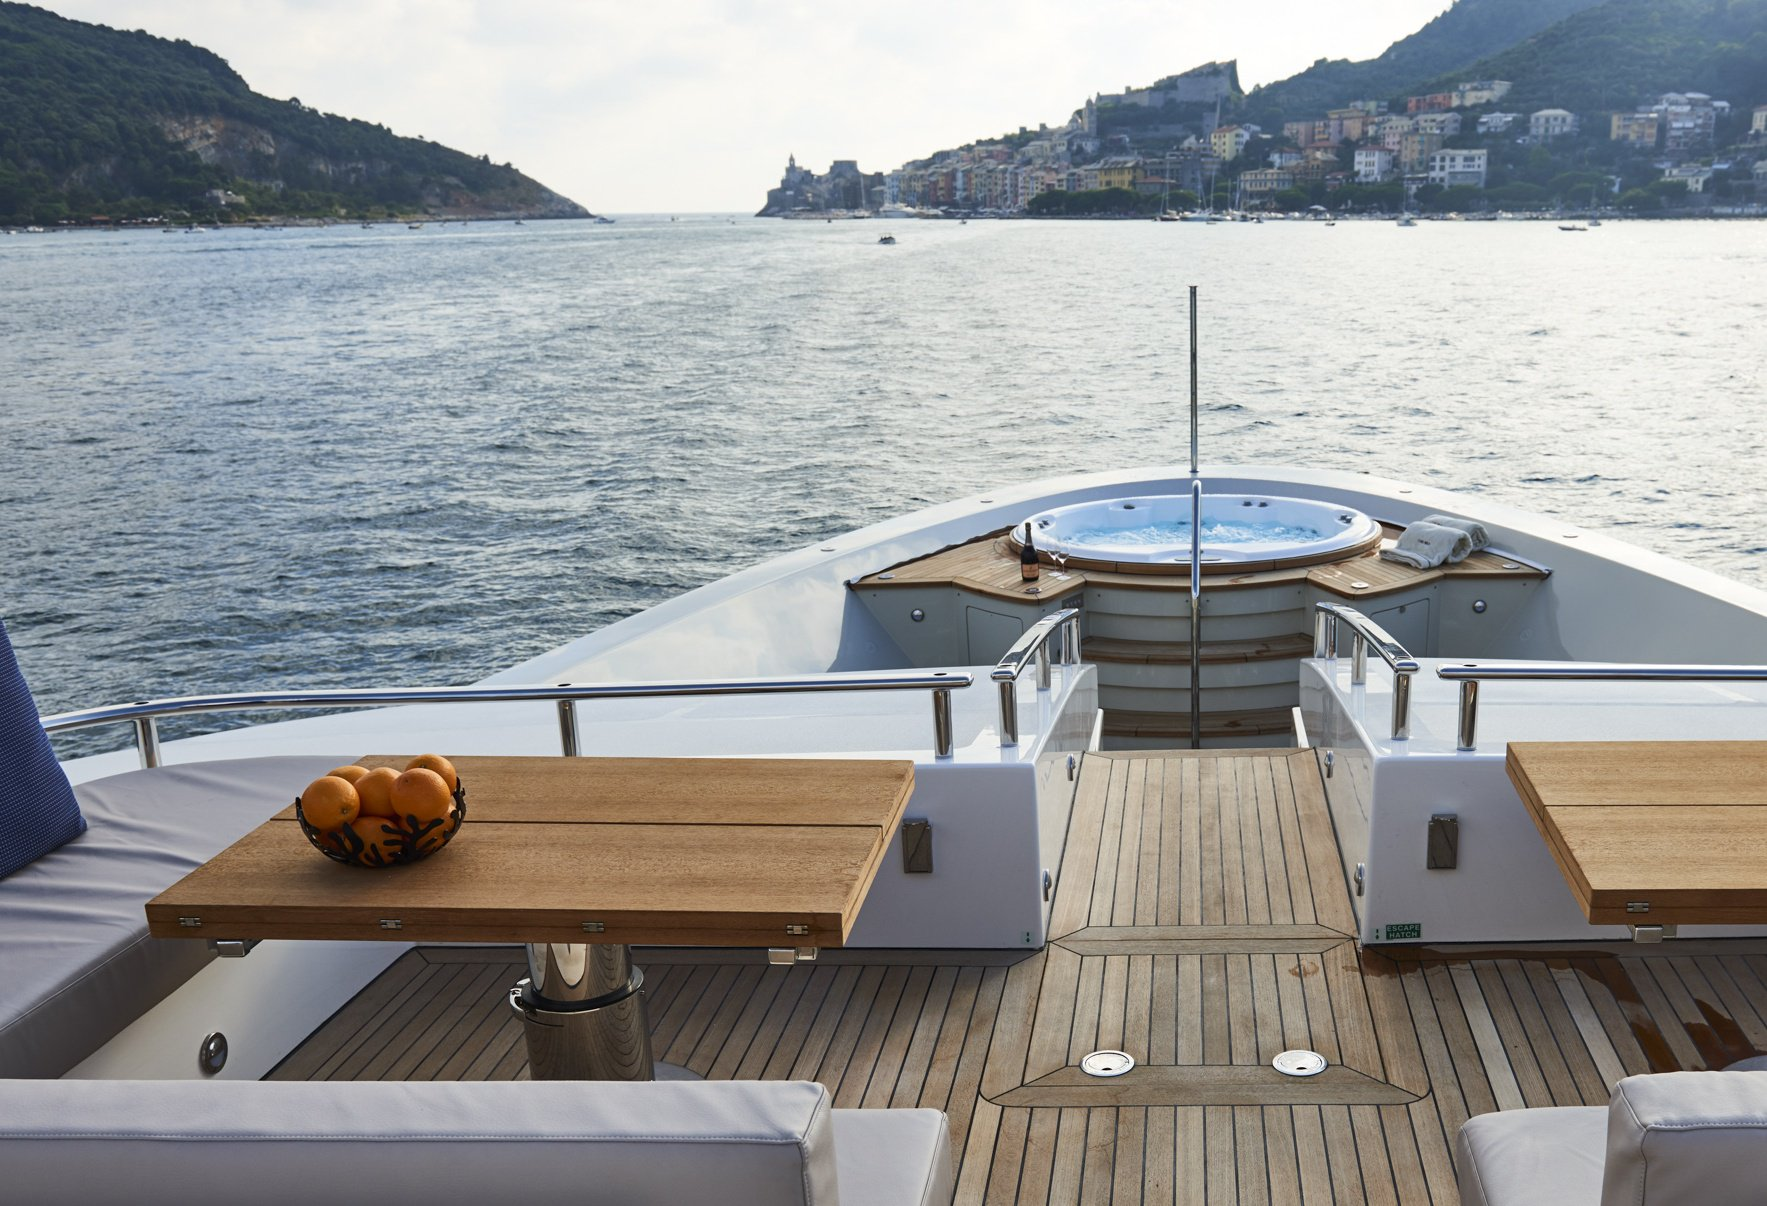 Foredeck Jacuzzi aboard a luxury superyacht